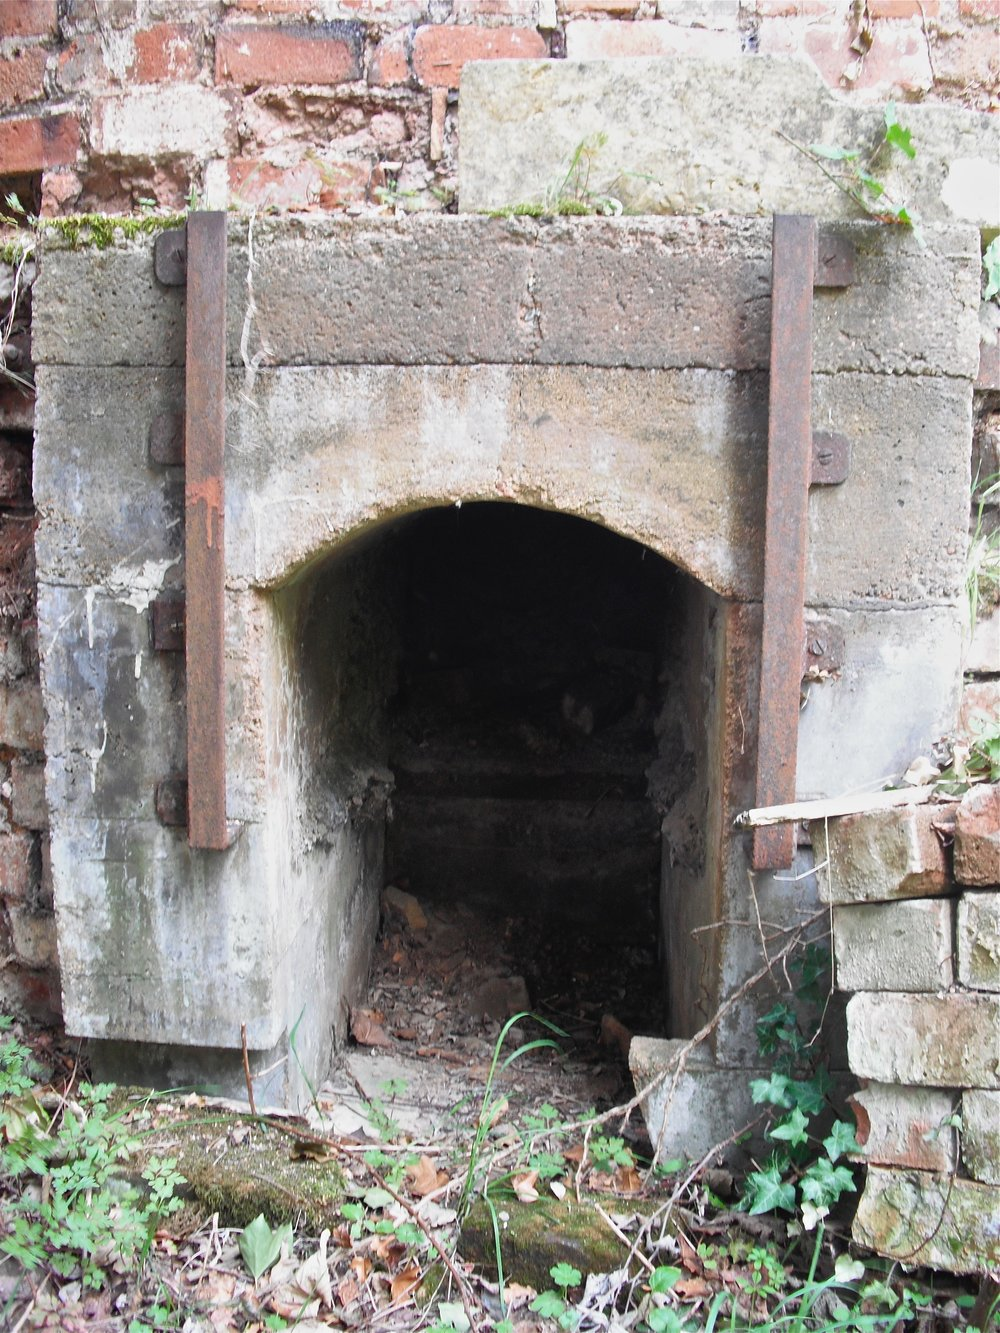 One of the fireboxes. Image courtesy of Dan Finnegan.